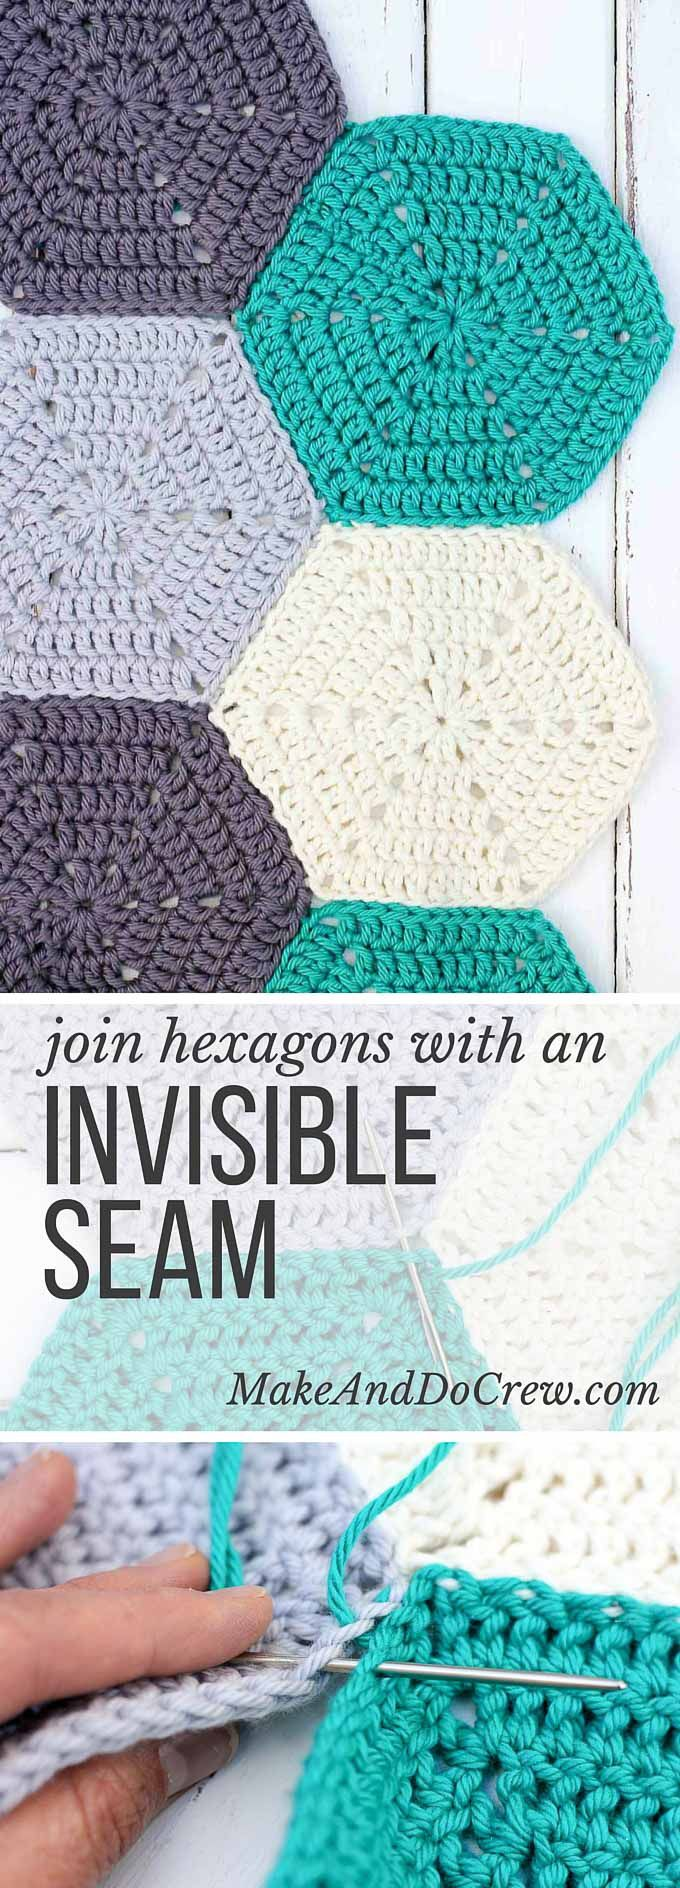 How To Join Crochet Hexagons With an Invisible Seam | Granny squares ...